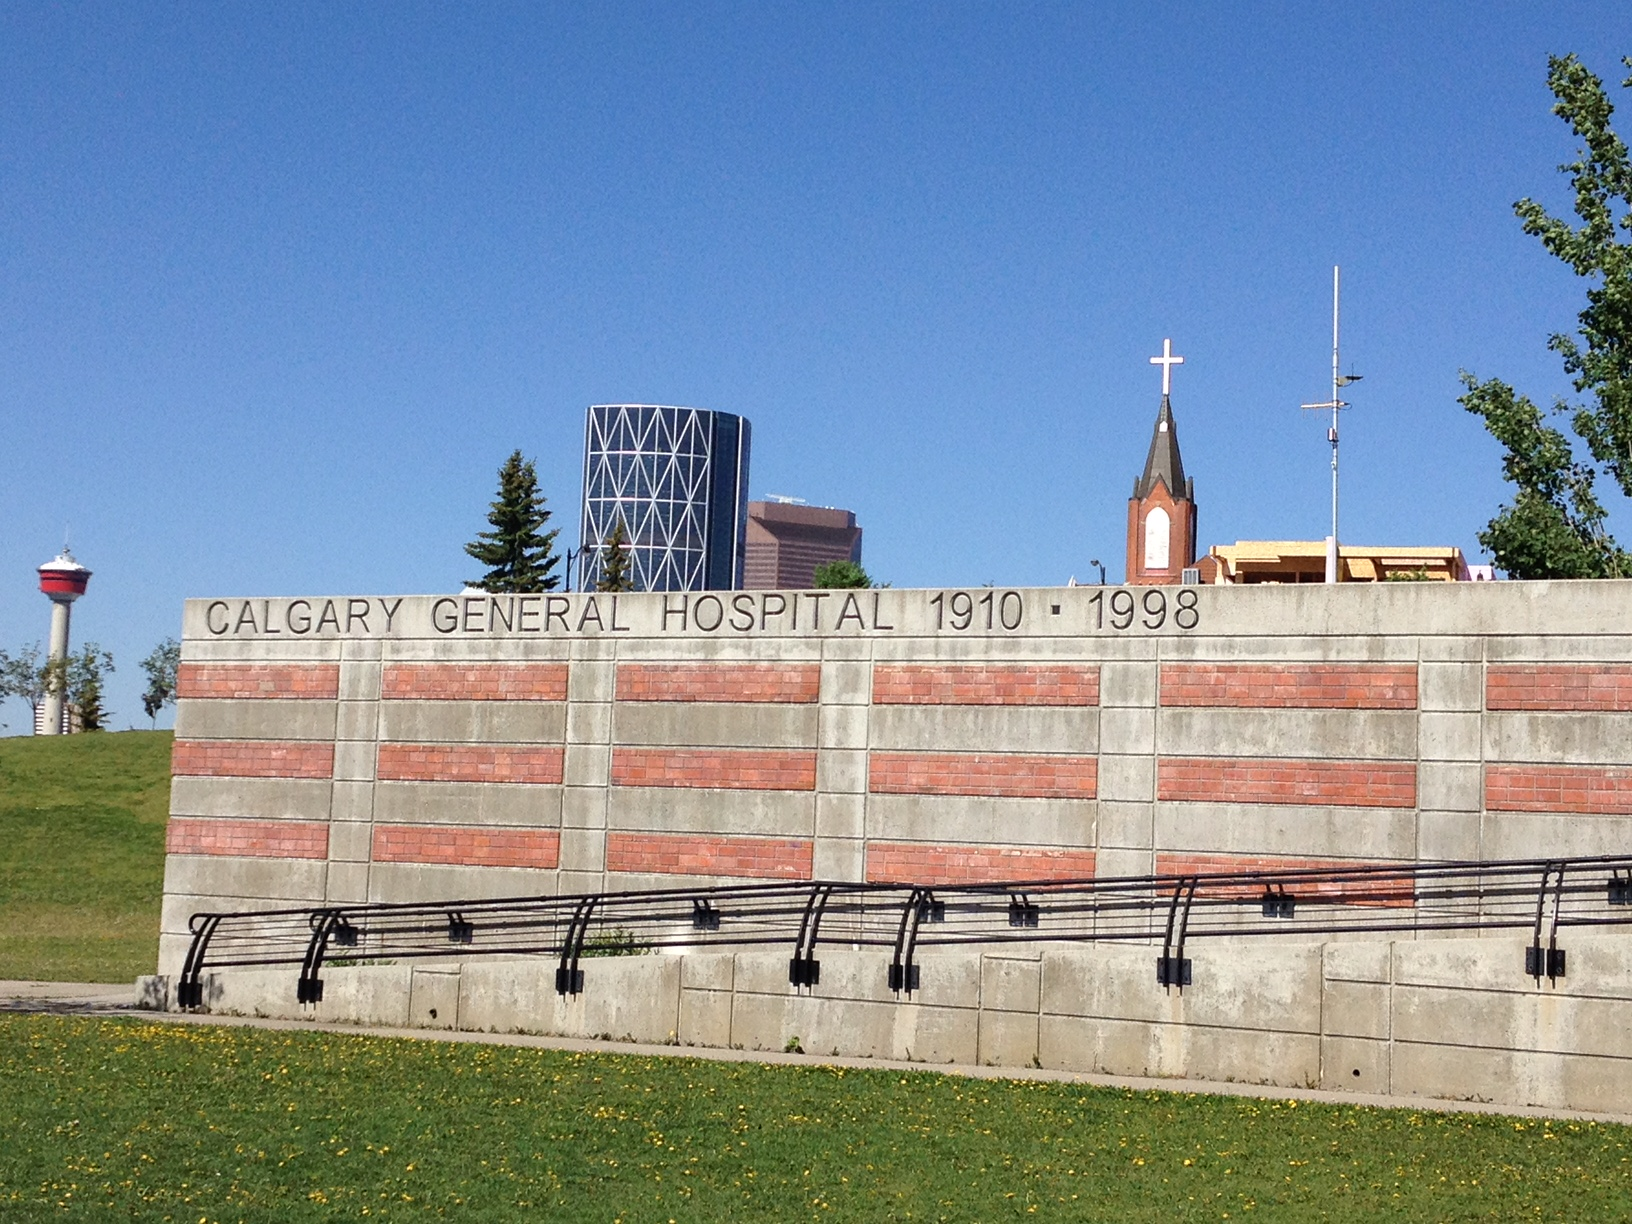 Monument to Calgary General Hospital with Calgary Tower in the background.